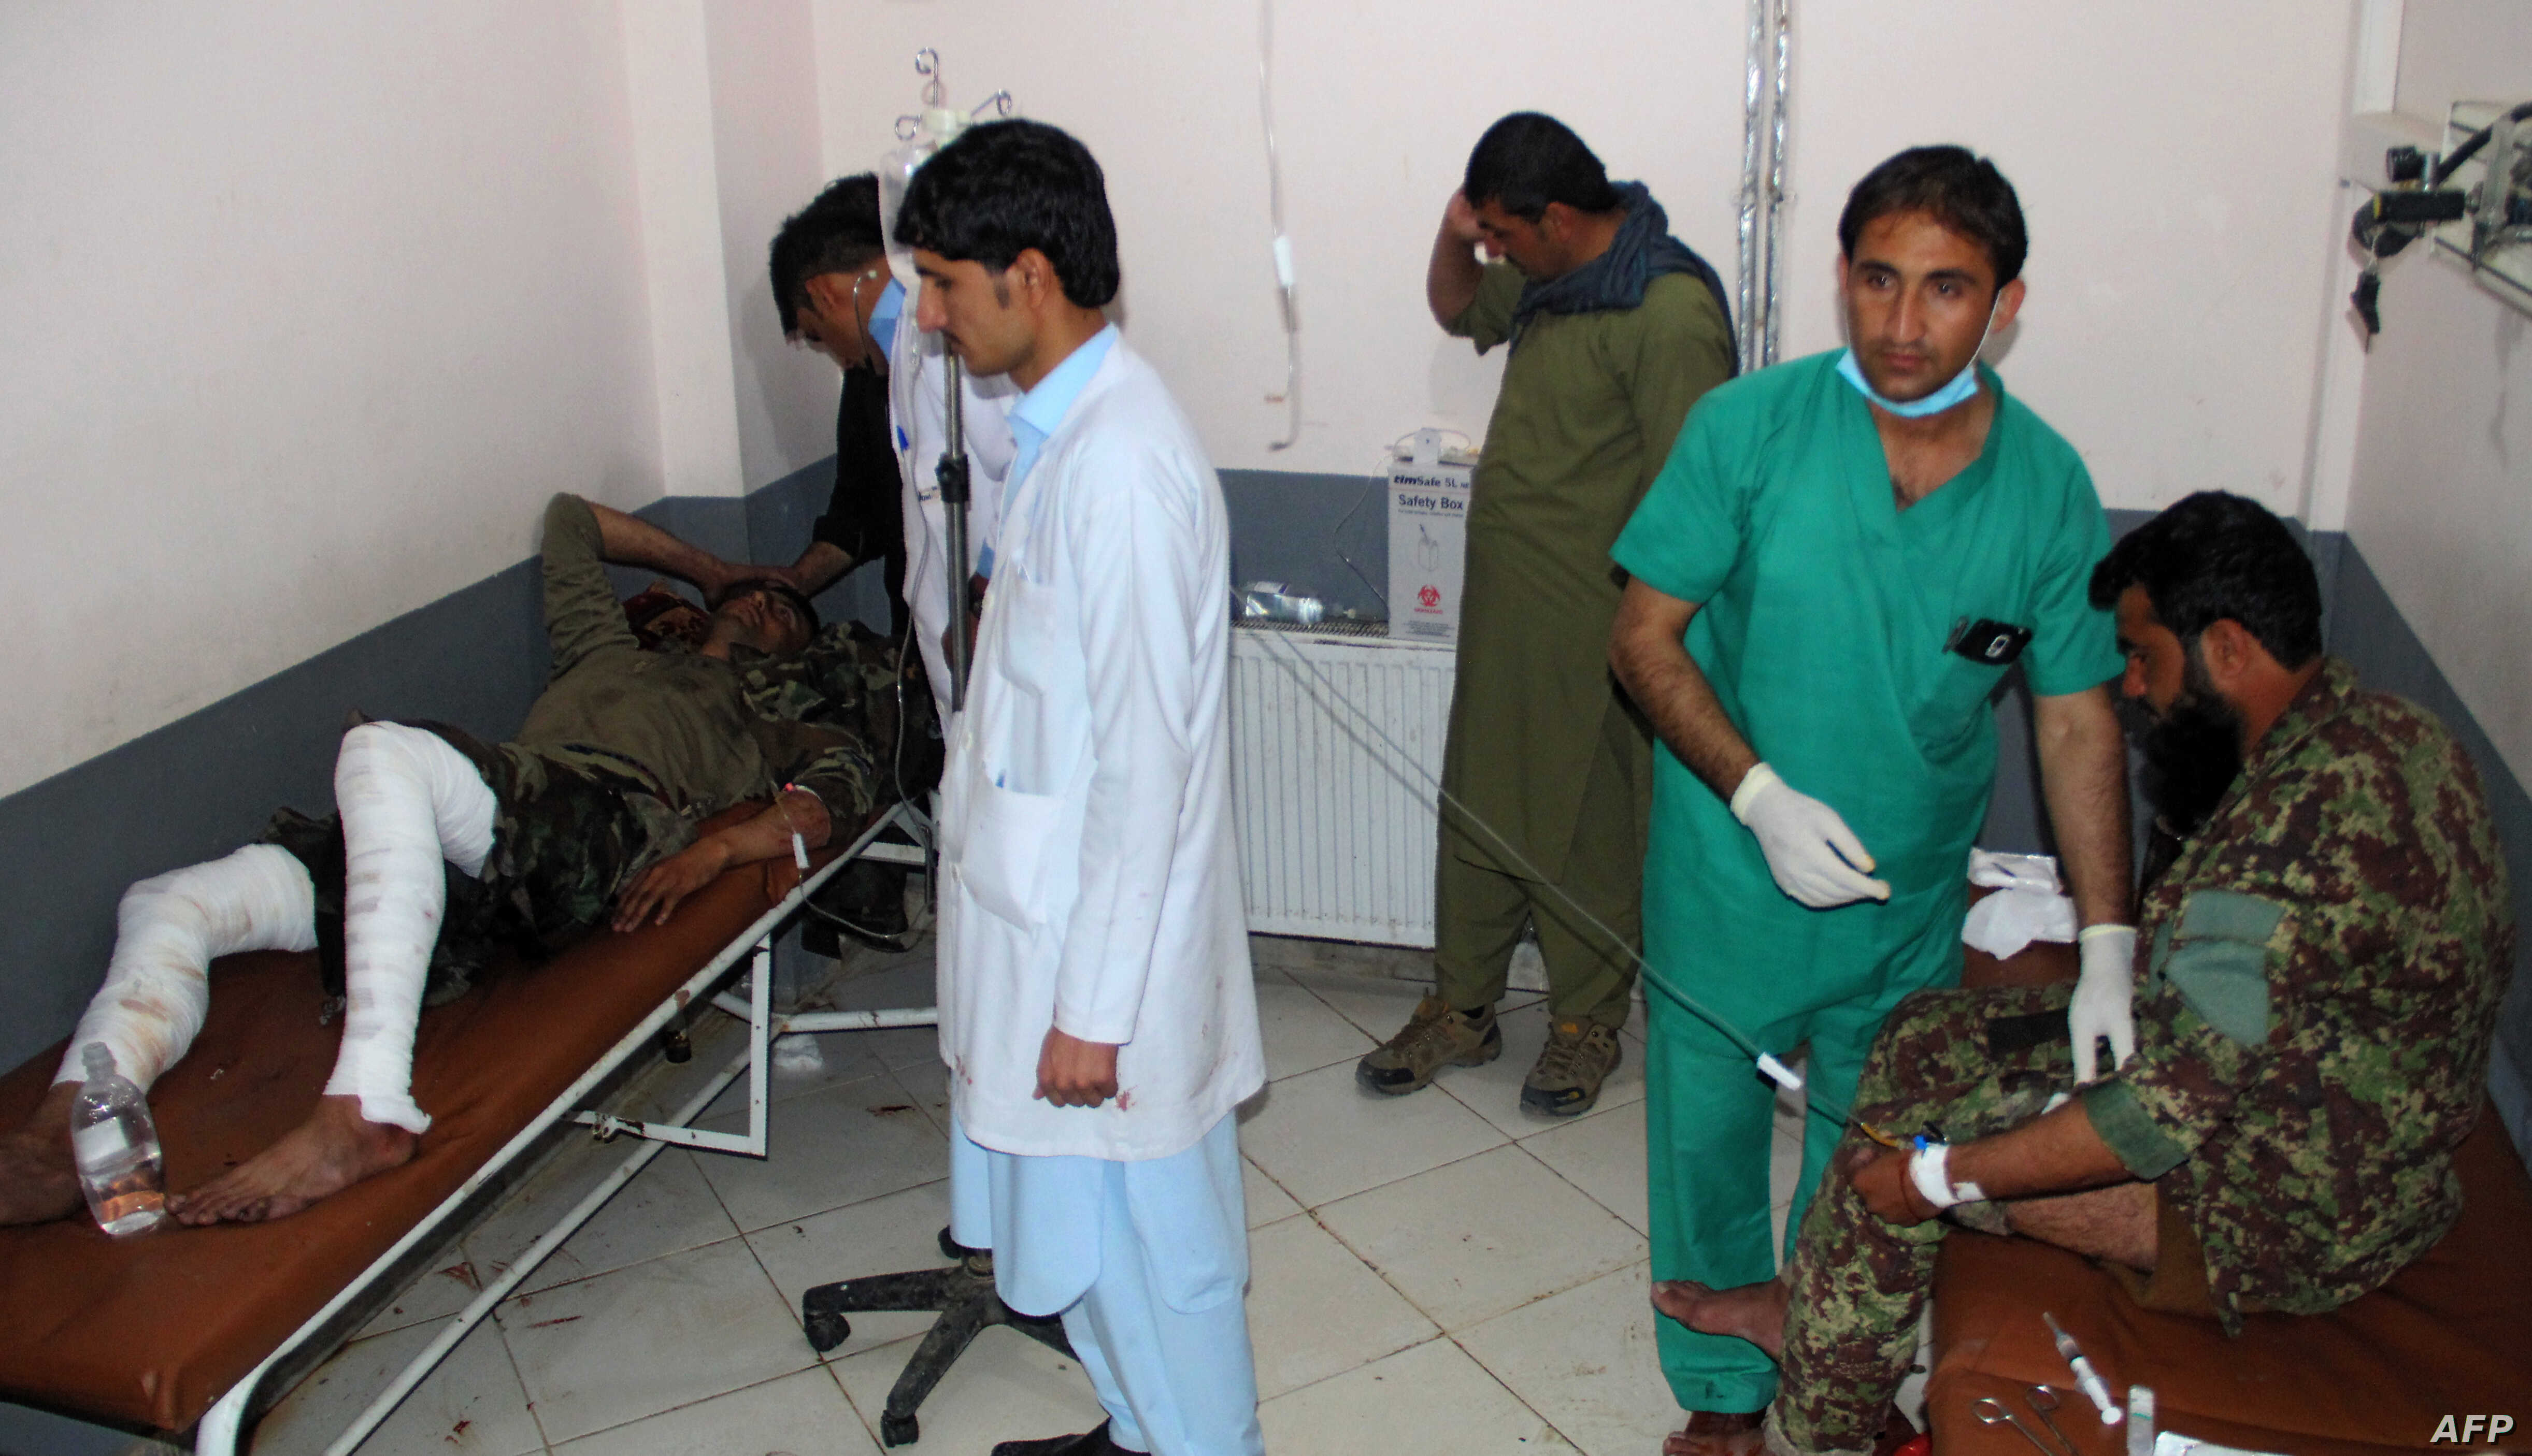 Wounded Afghan National Army (ANA) soldiers receive treatment in a hospital after a suicide bomber blew himself up inside a packed mosque on an Afghan army base in Khost province, Nov. 23, 2018.